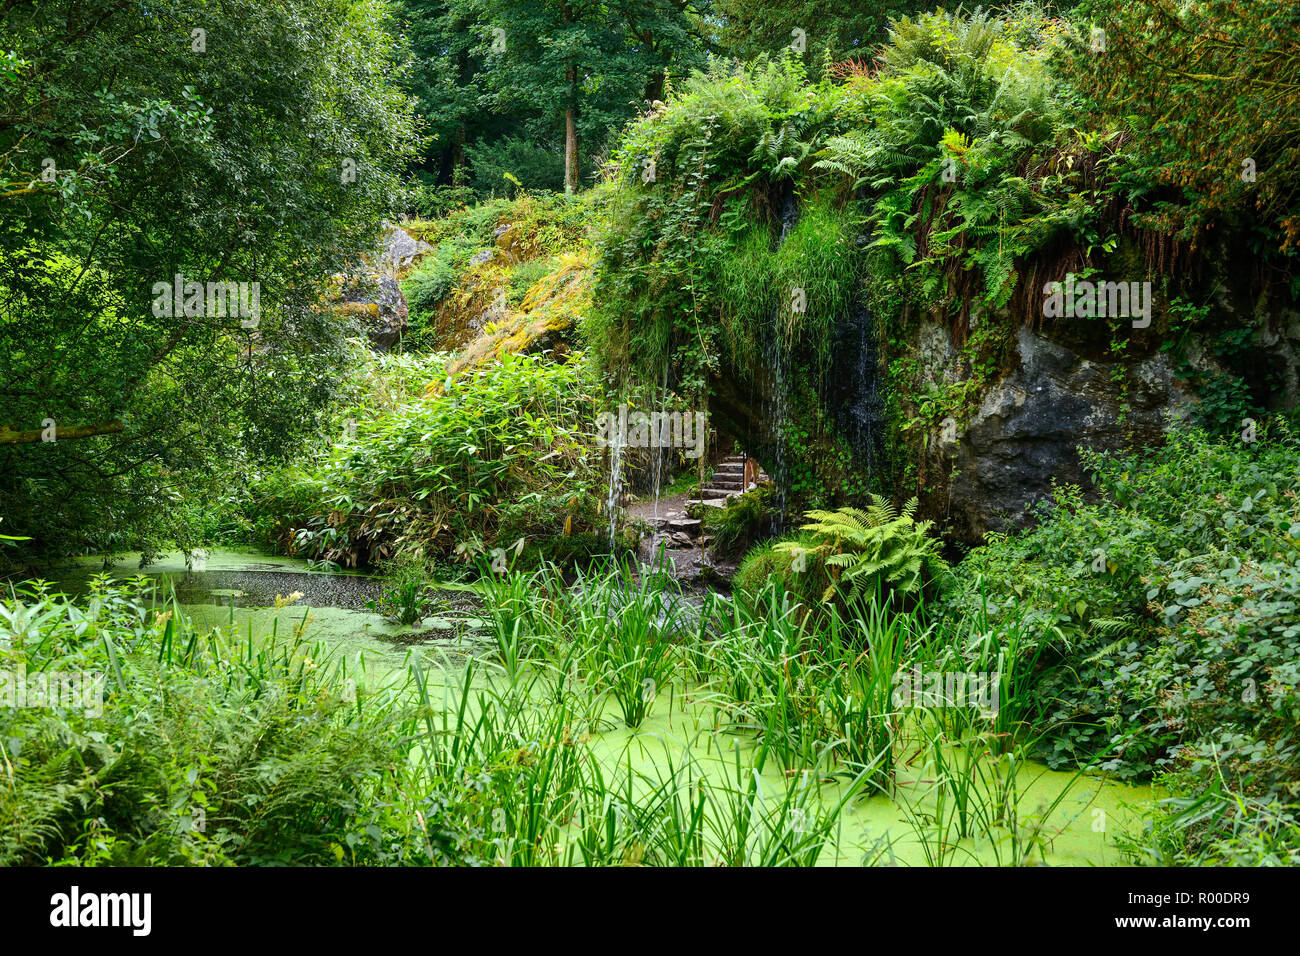 Waterfall and pond at Wishing Steps within the Rock Close at Blarney Castle, near Cork in County Cork, Republic of Ireland - Stock Image